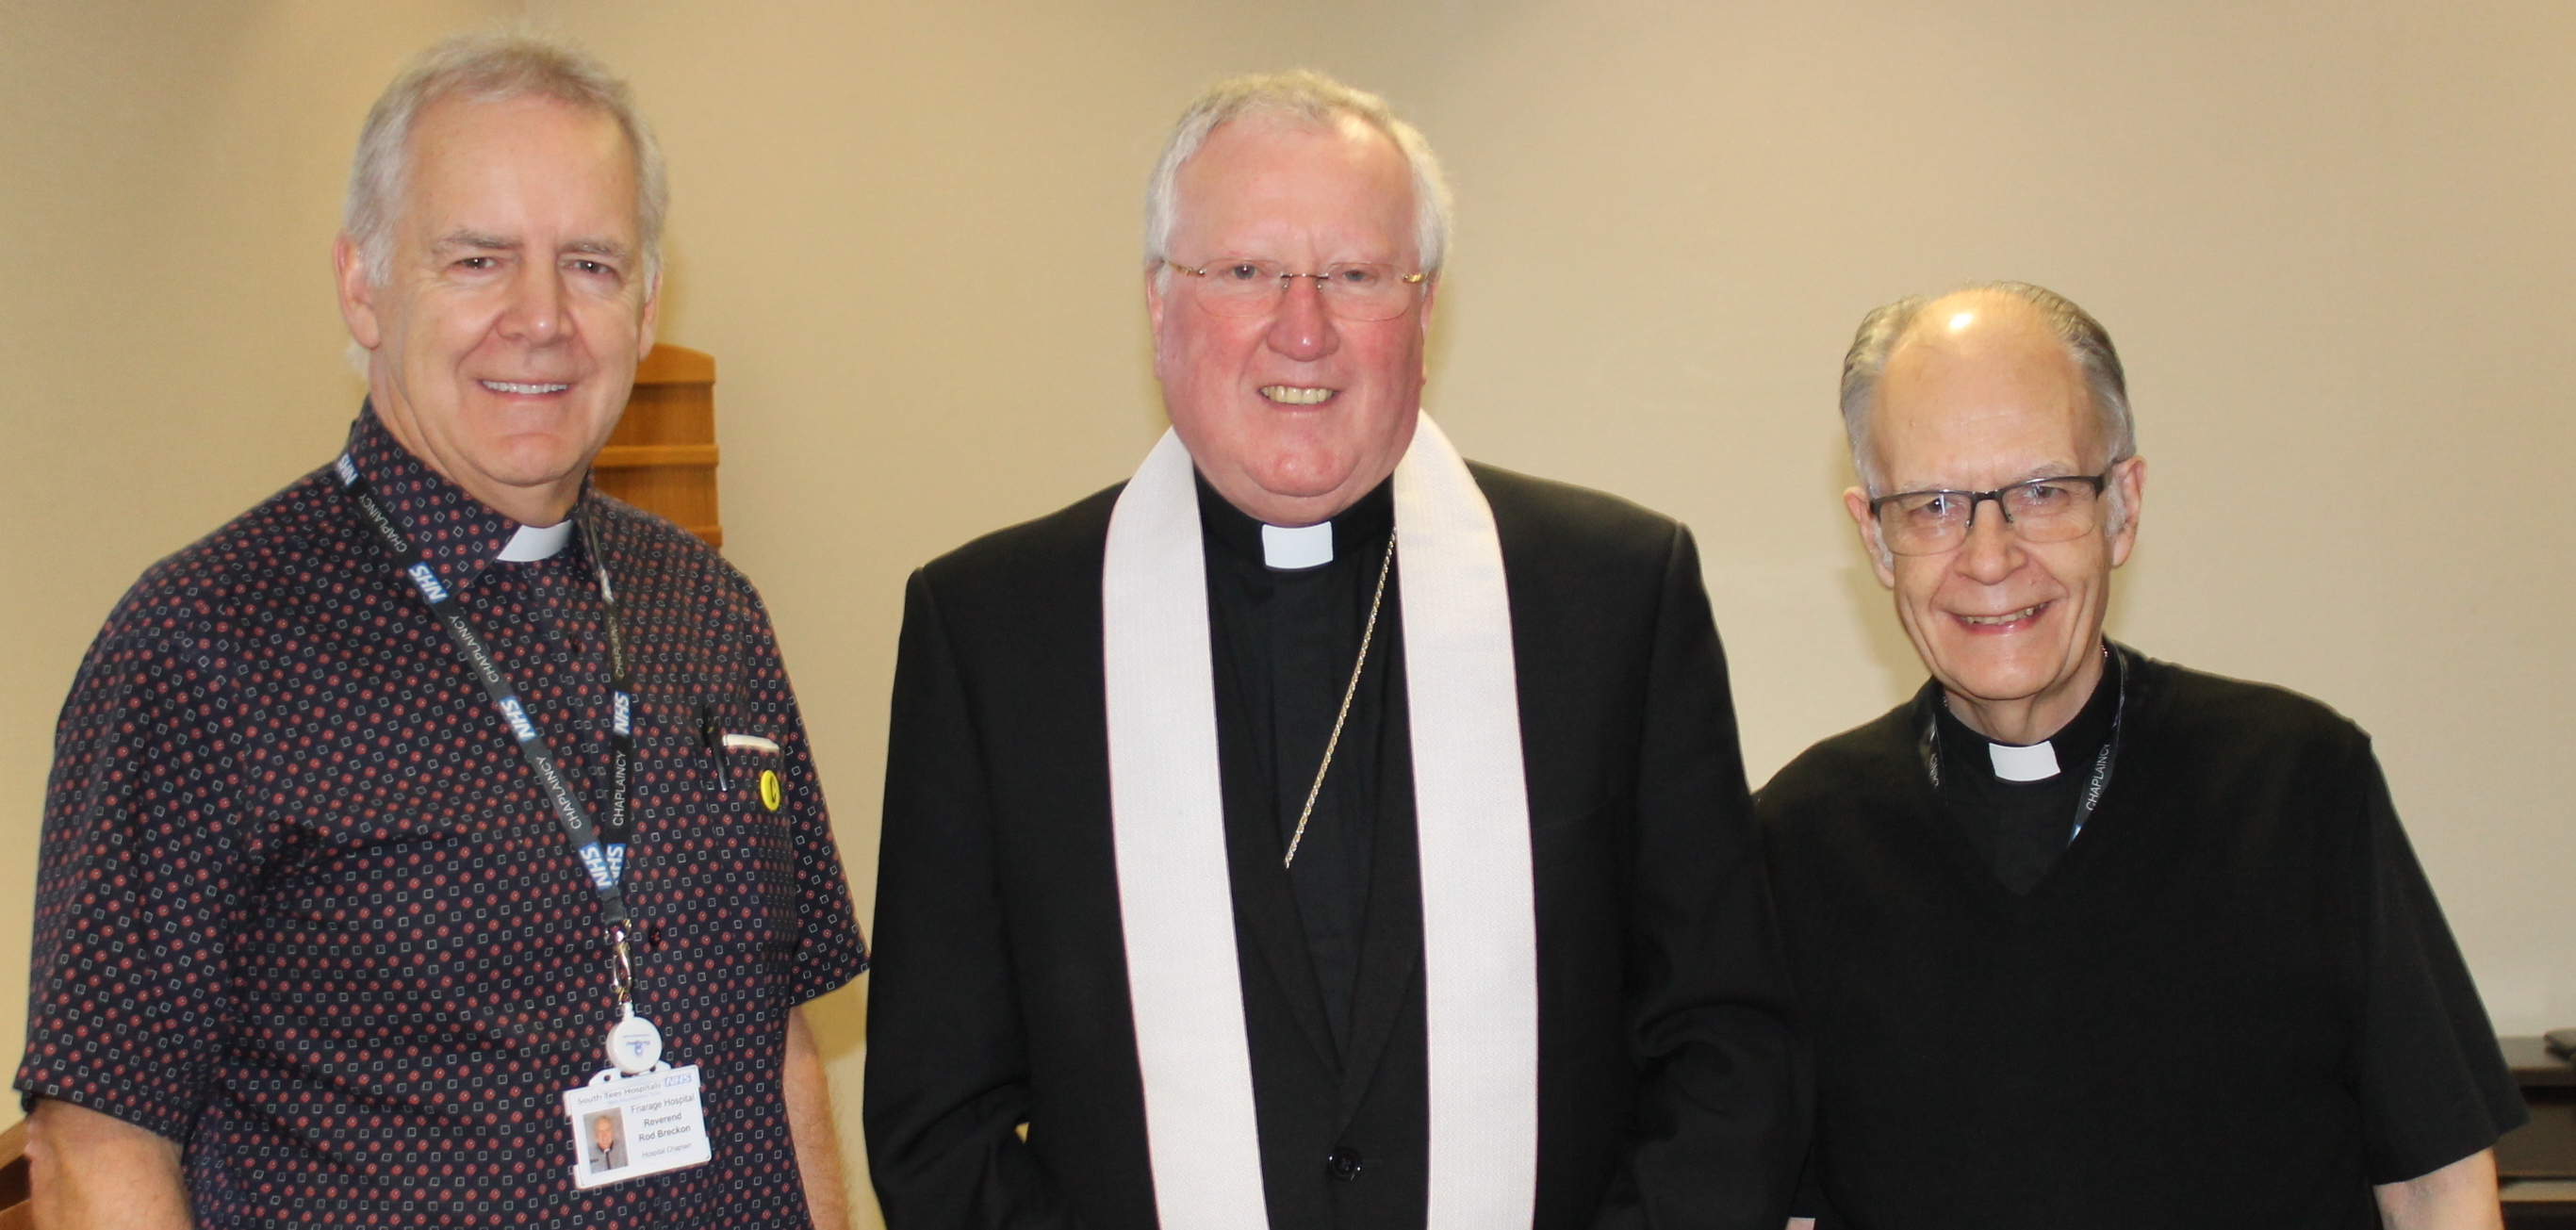 Baptist minister Rodney Breckon, Bishop Terry and Deacon Len Collings